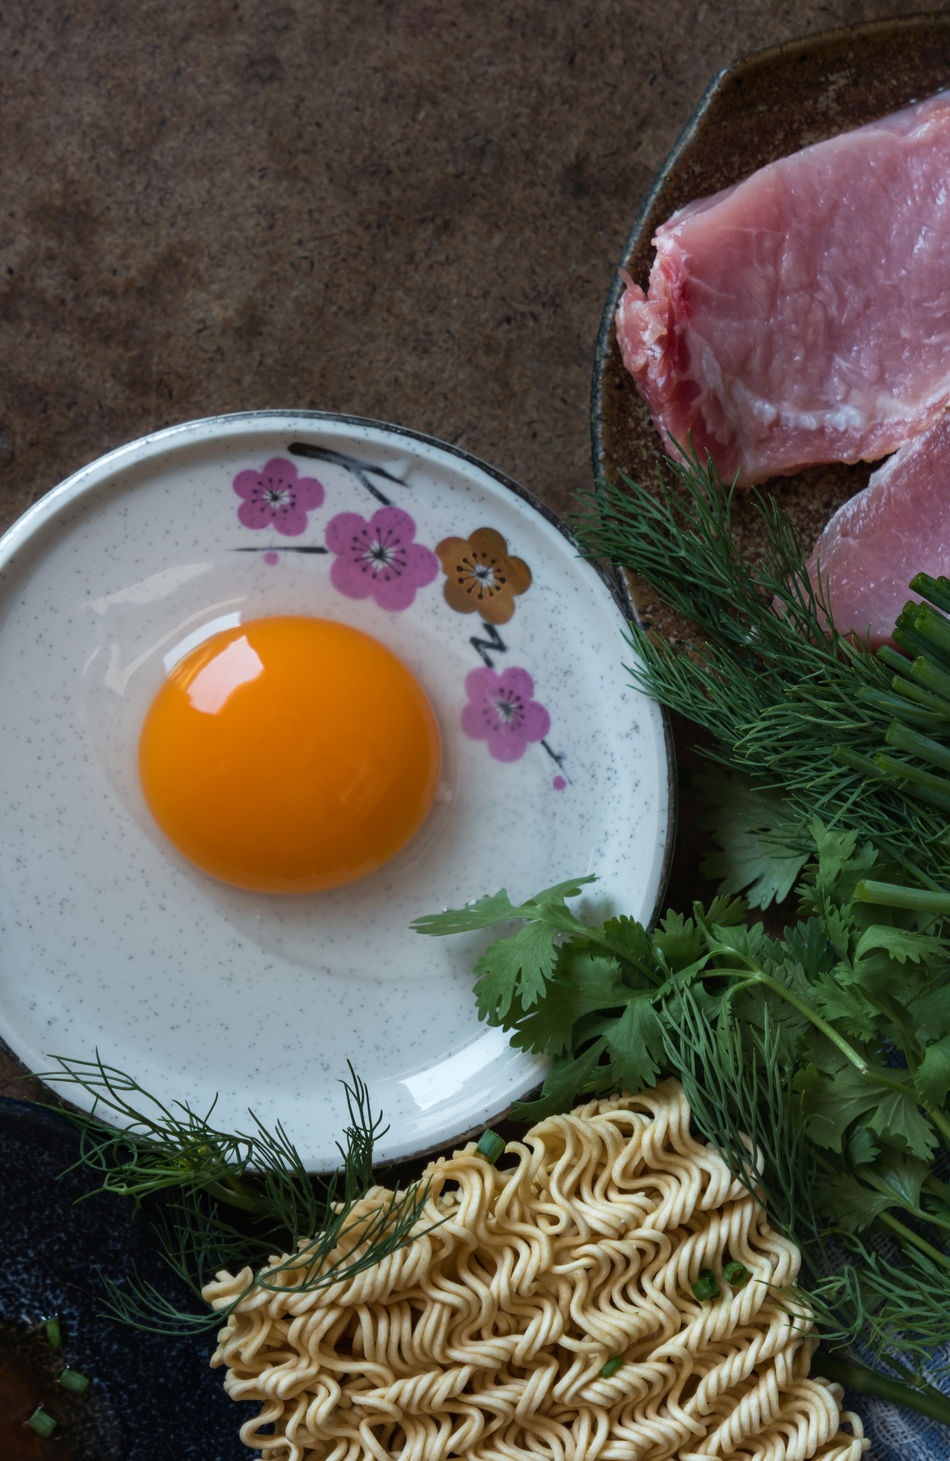 Close-up Cooking Coriander Day Dill Egg Egg Yolk Egg Yolk Food Food And Drink Food Preparation Freshness Healthy Eating High Angle View Indoors  Instant Noodle No People Plate Pork Raw Food Raw Meat   Spring Onion